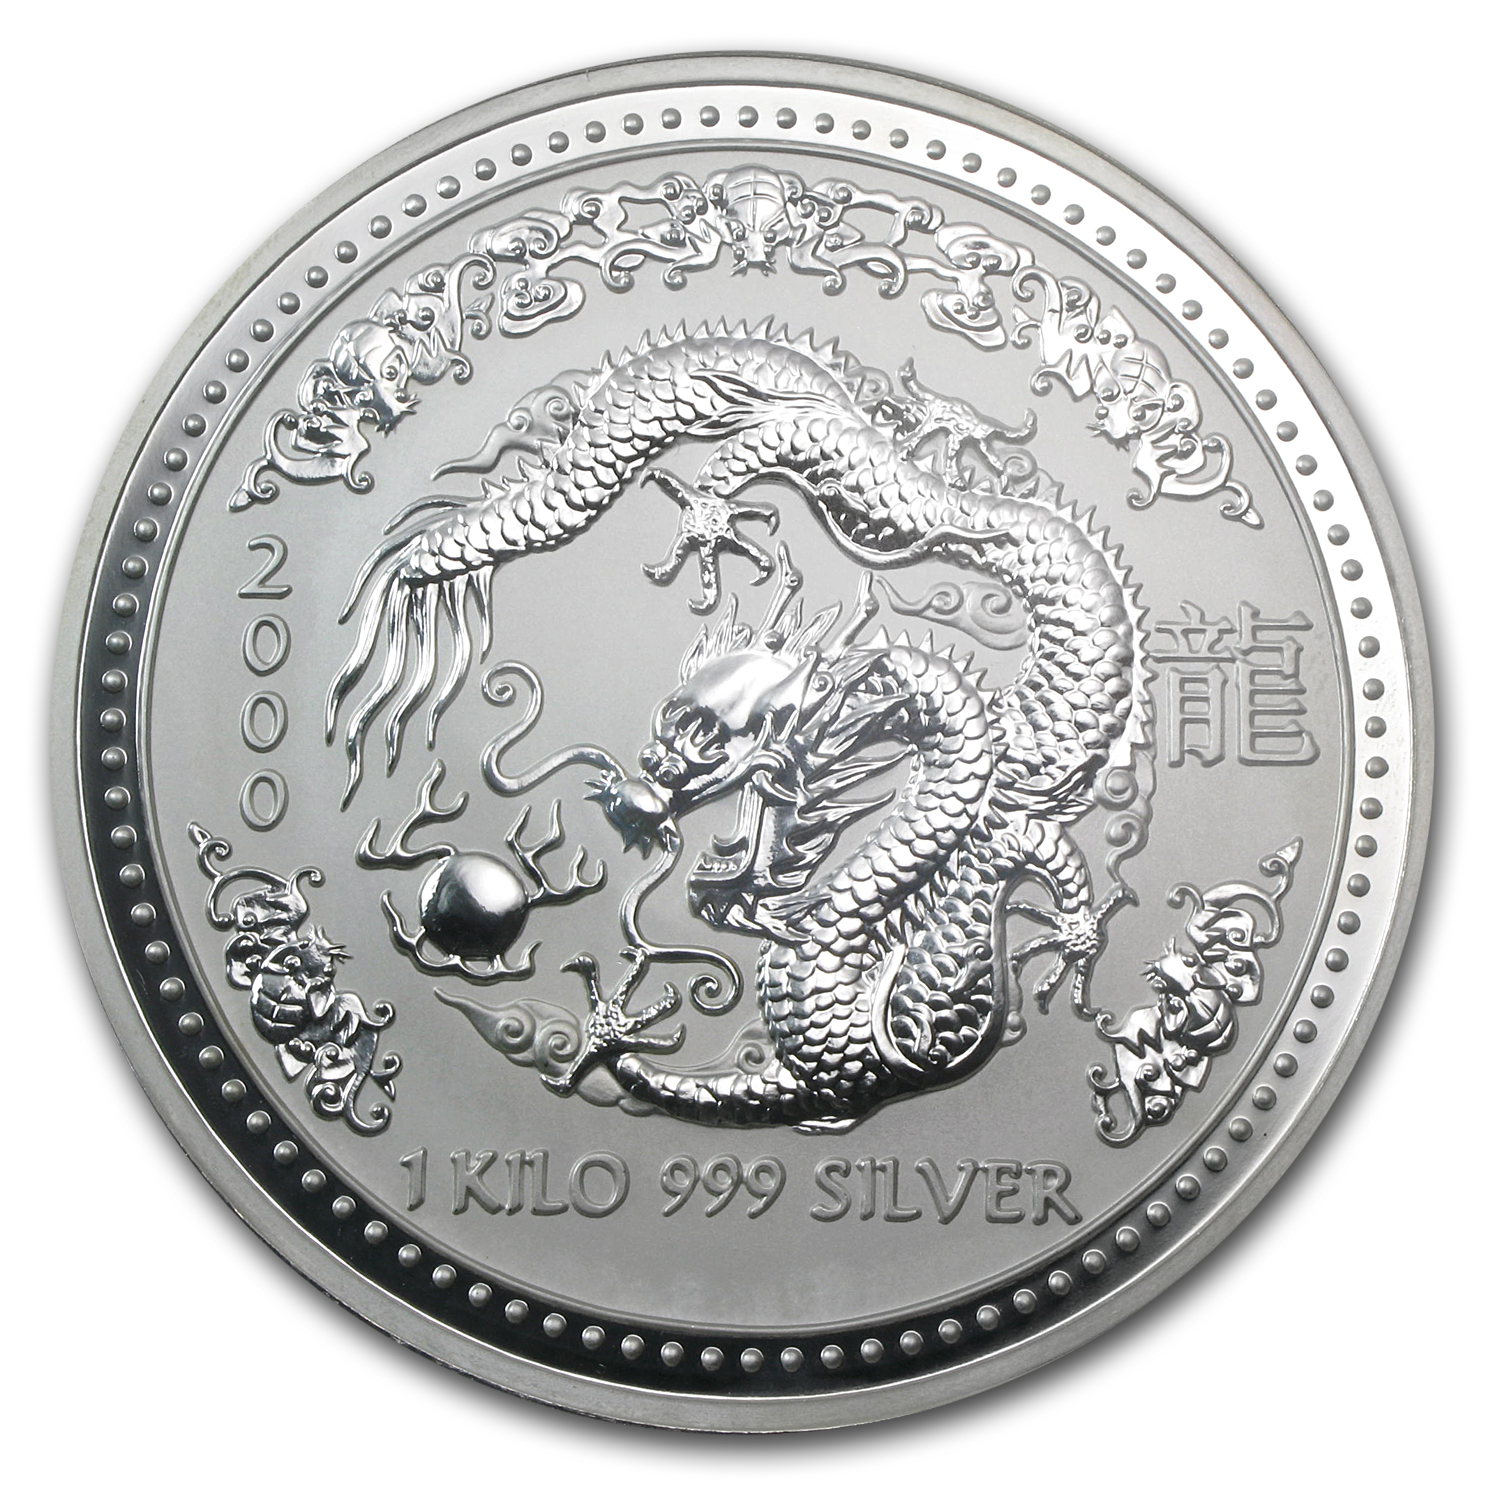 2000 1 Kilo Silver Australian Year of the Dragon MS-67 NGC